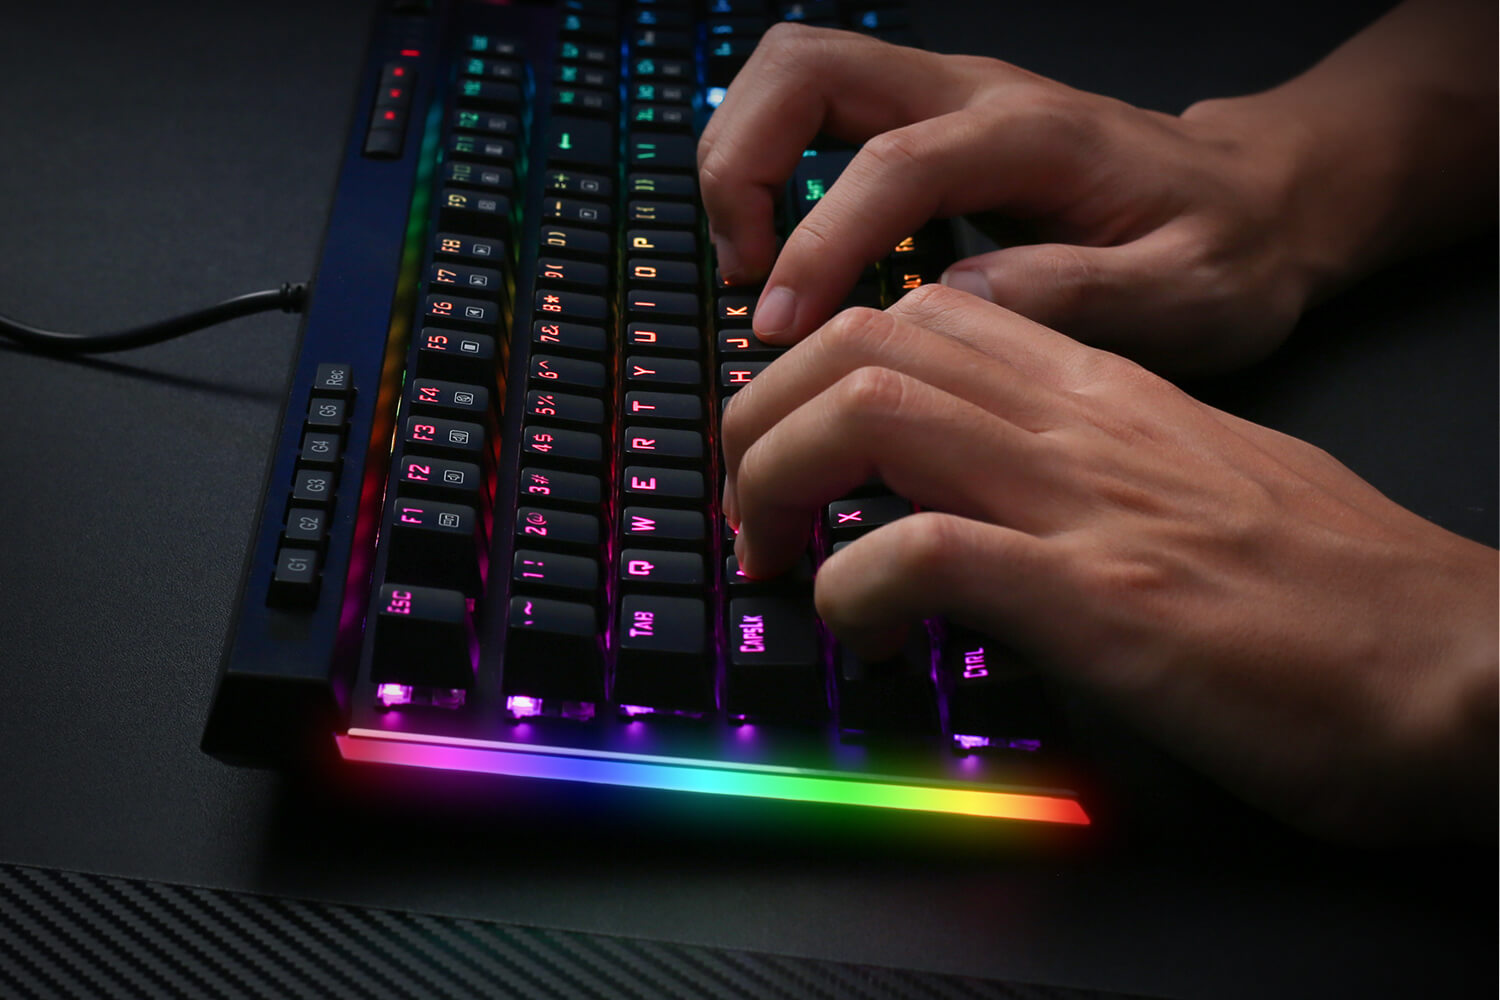 Redragon k580-pro brown switches keybaord with RGB Side Lights